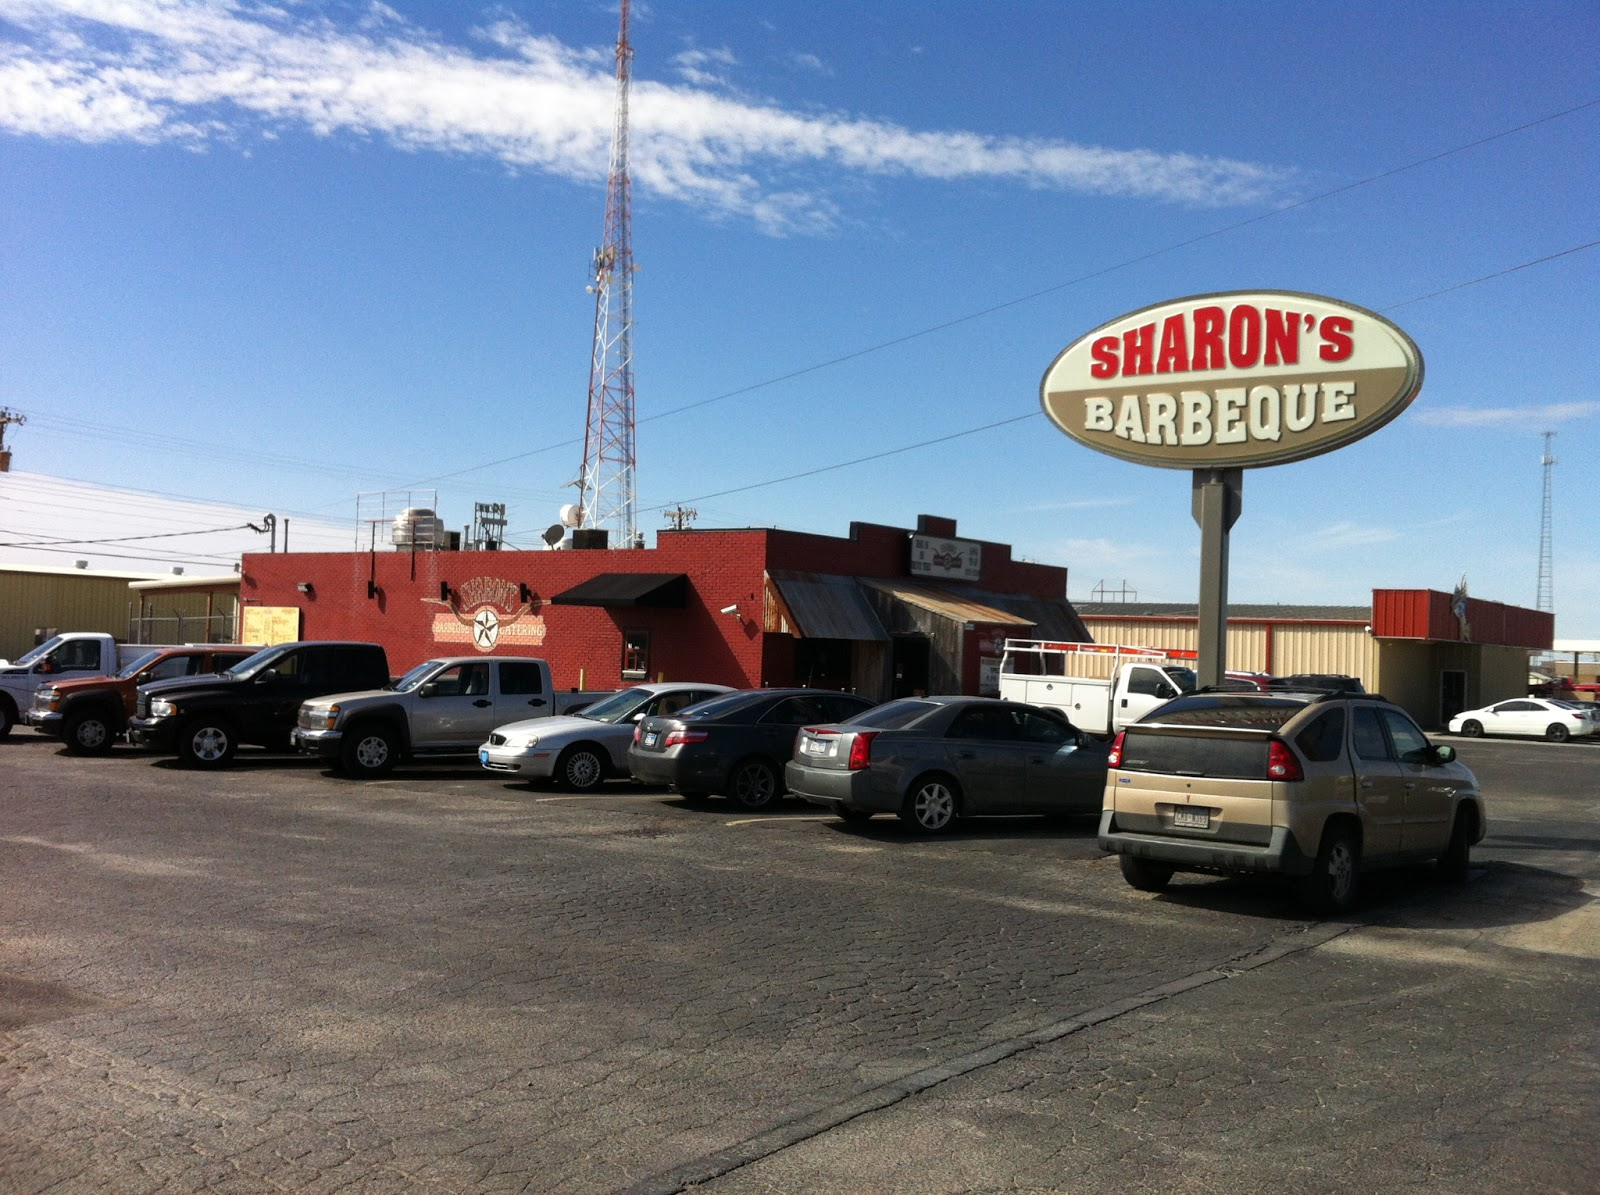 Sharon Barbeque Abilene Barbecue BBQ Bar-B-Que